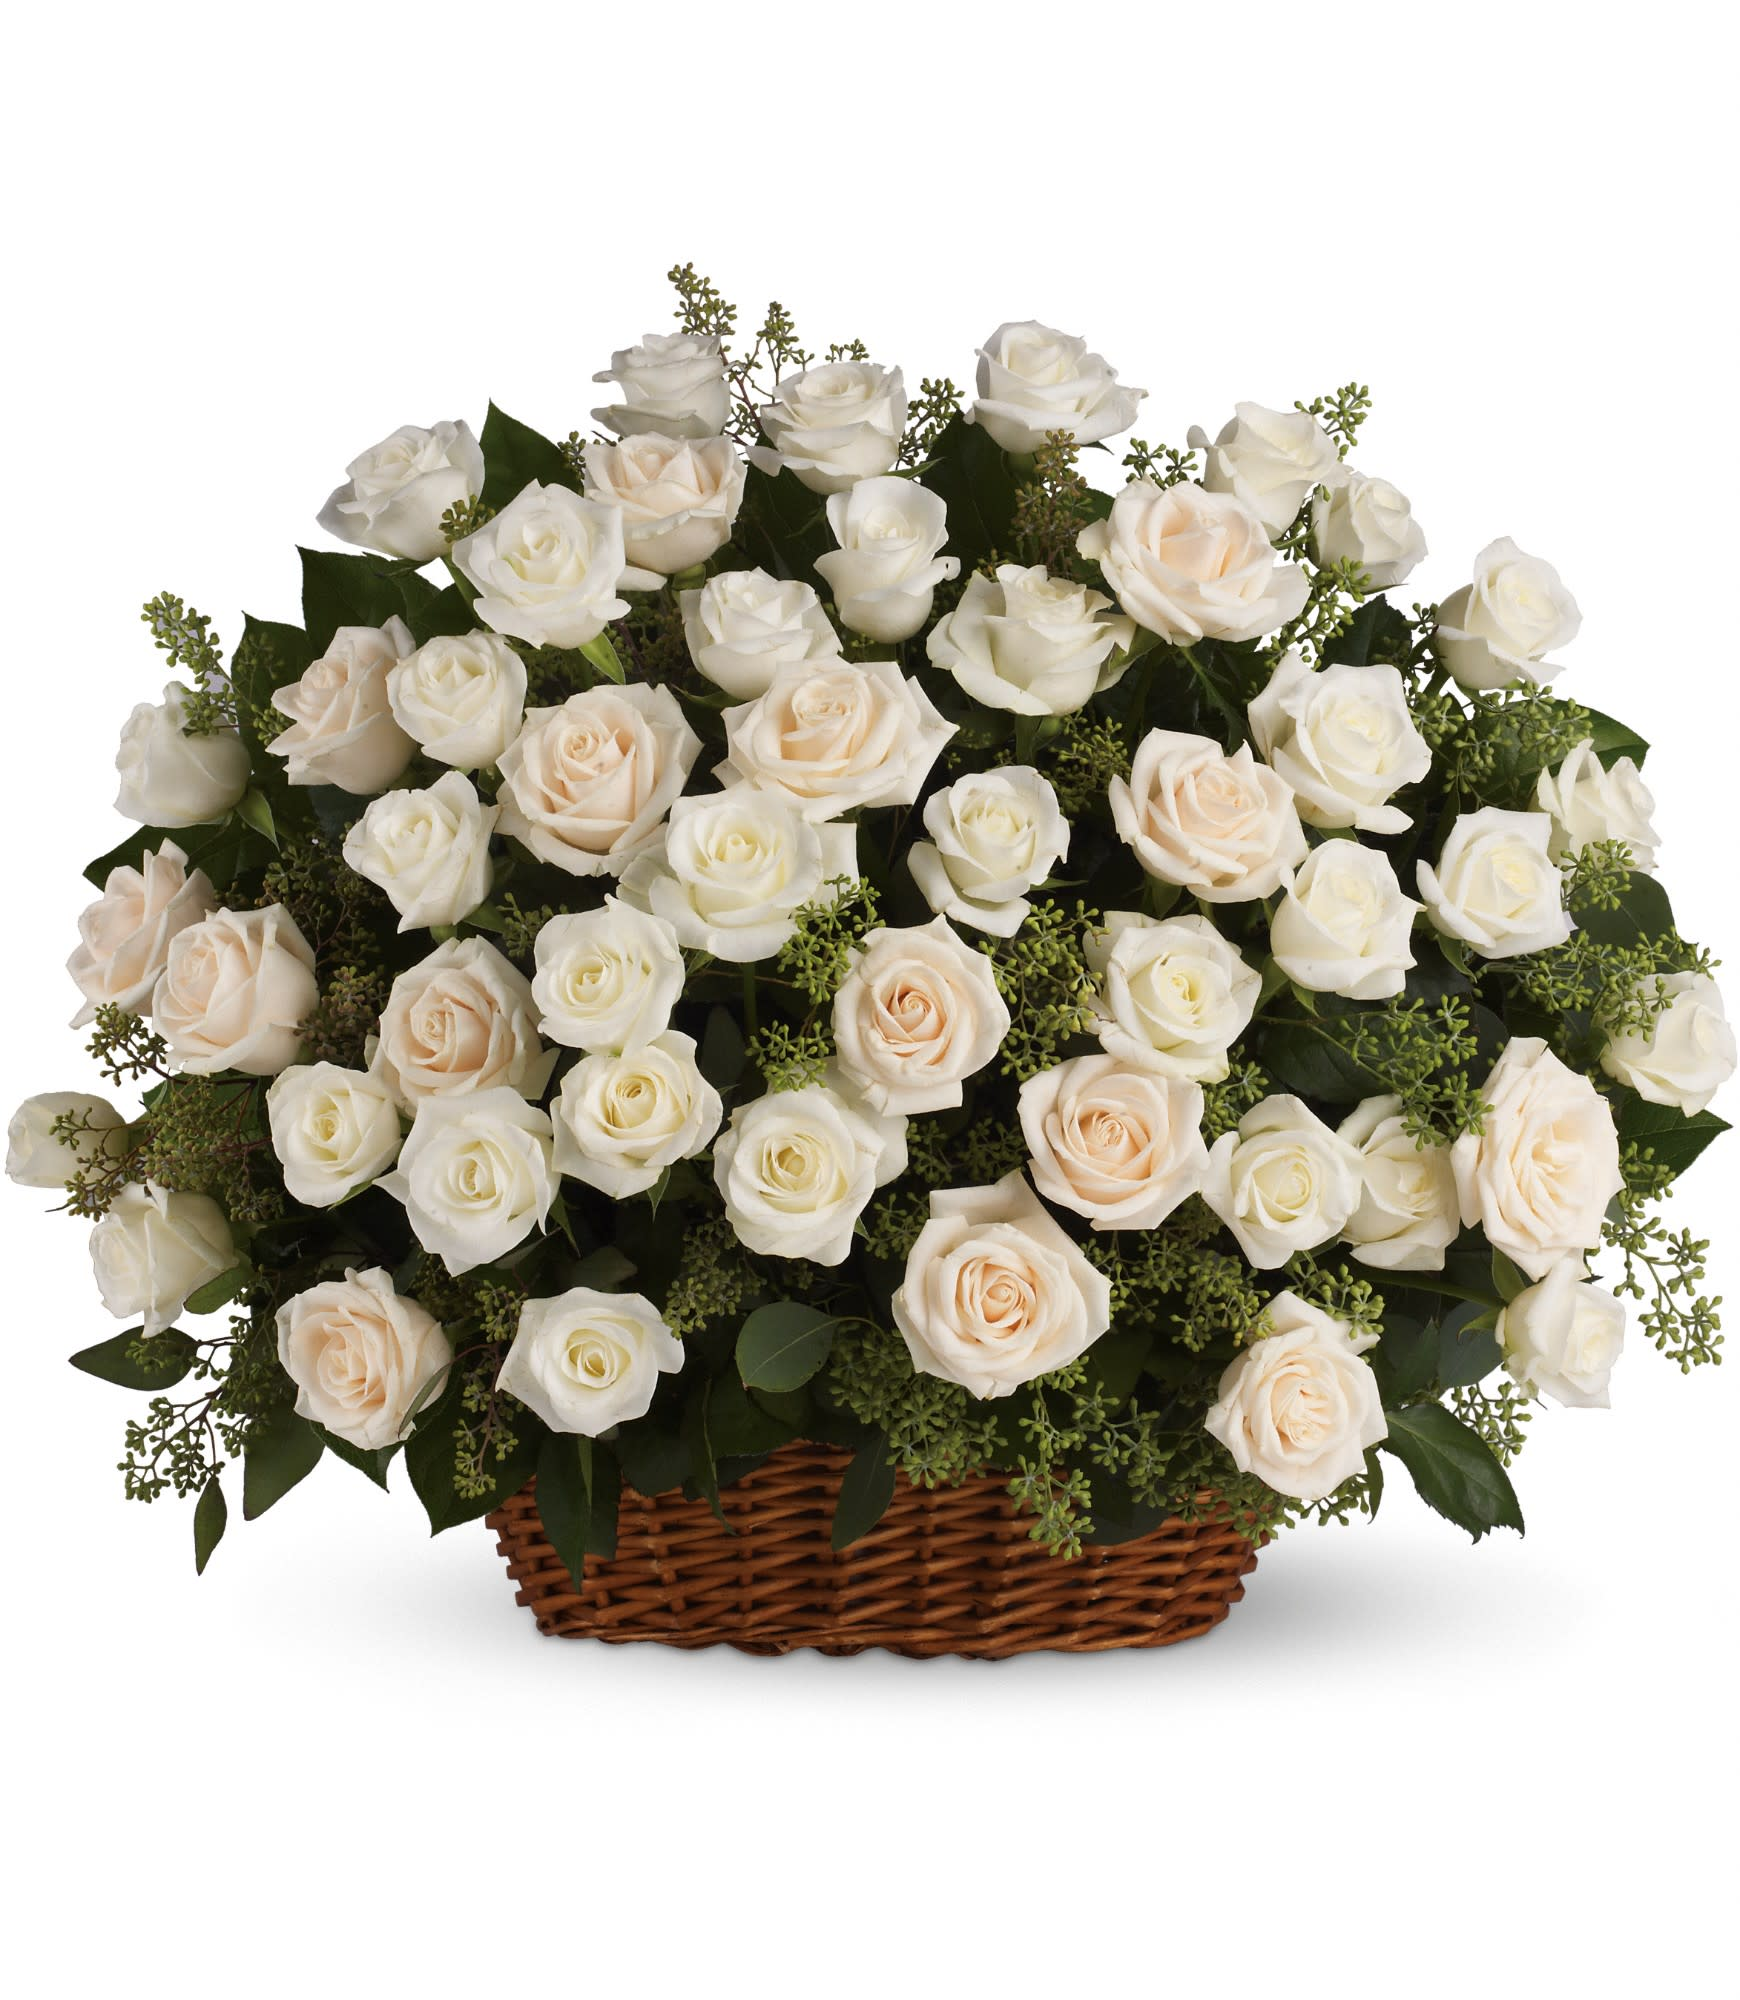 Bountiful Rose Basket by Teleflora - A beautiful, bountiful basket of luminous white roses that feels so fresh, natural, and welcomed in a home or at a service.